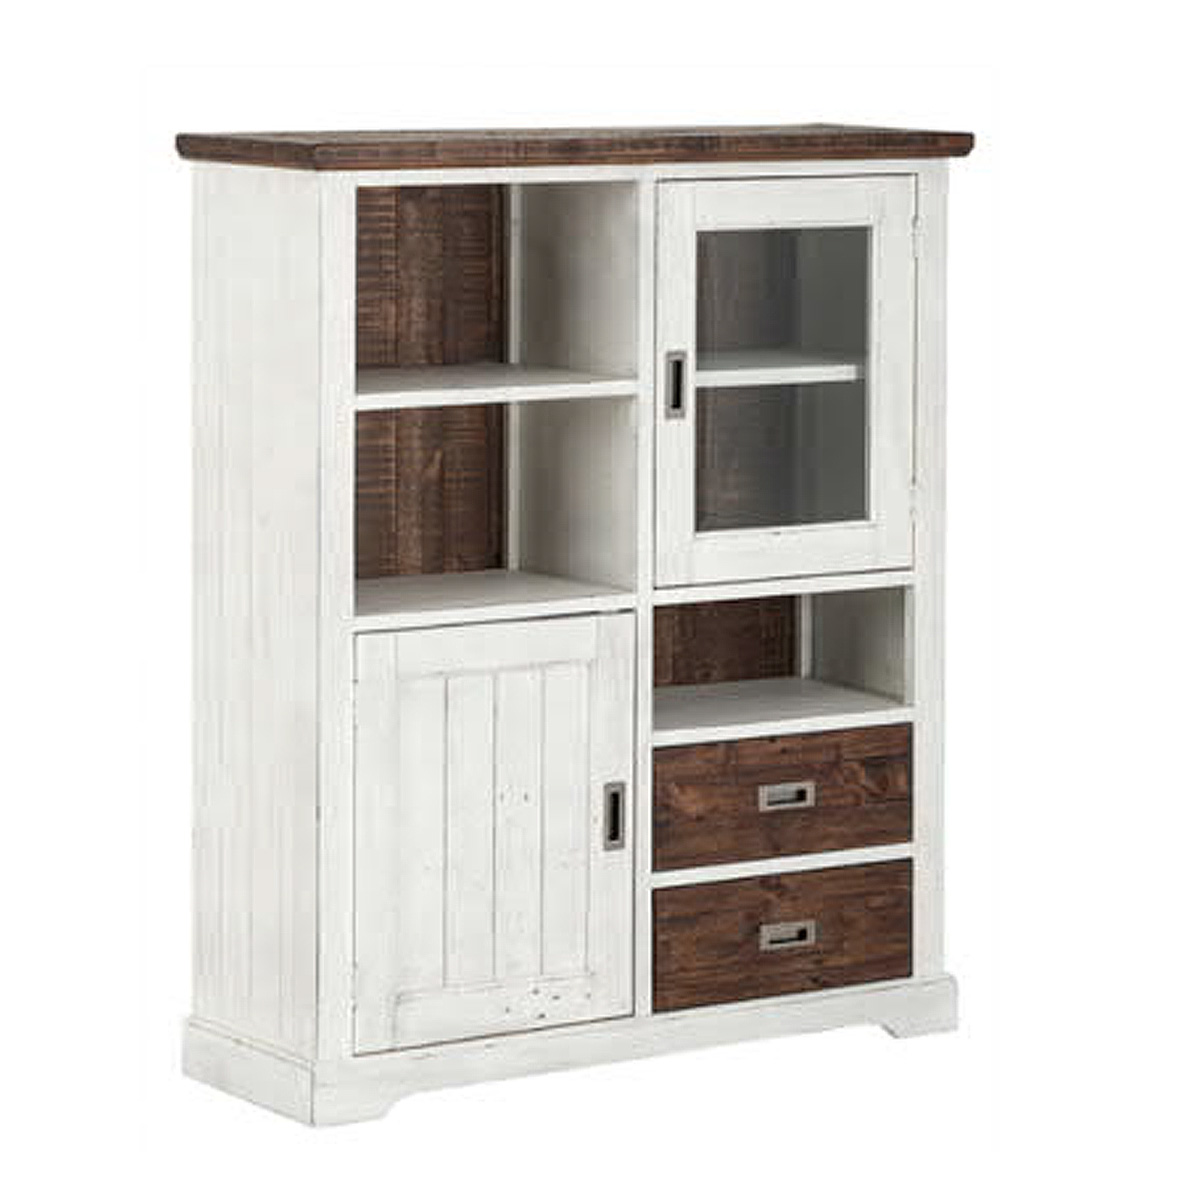 highboard-dover